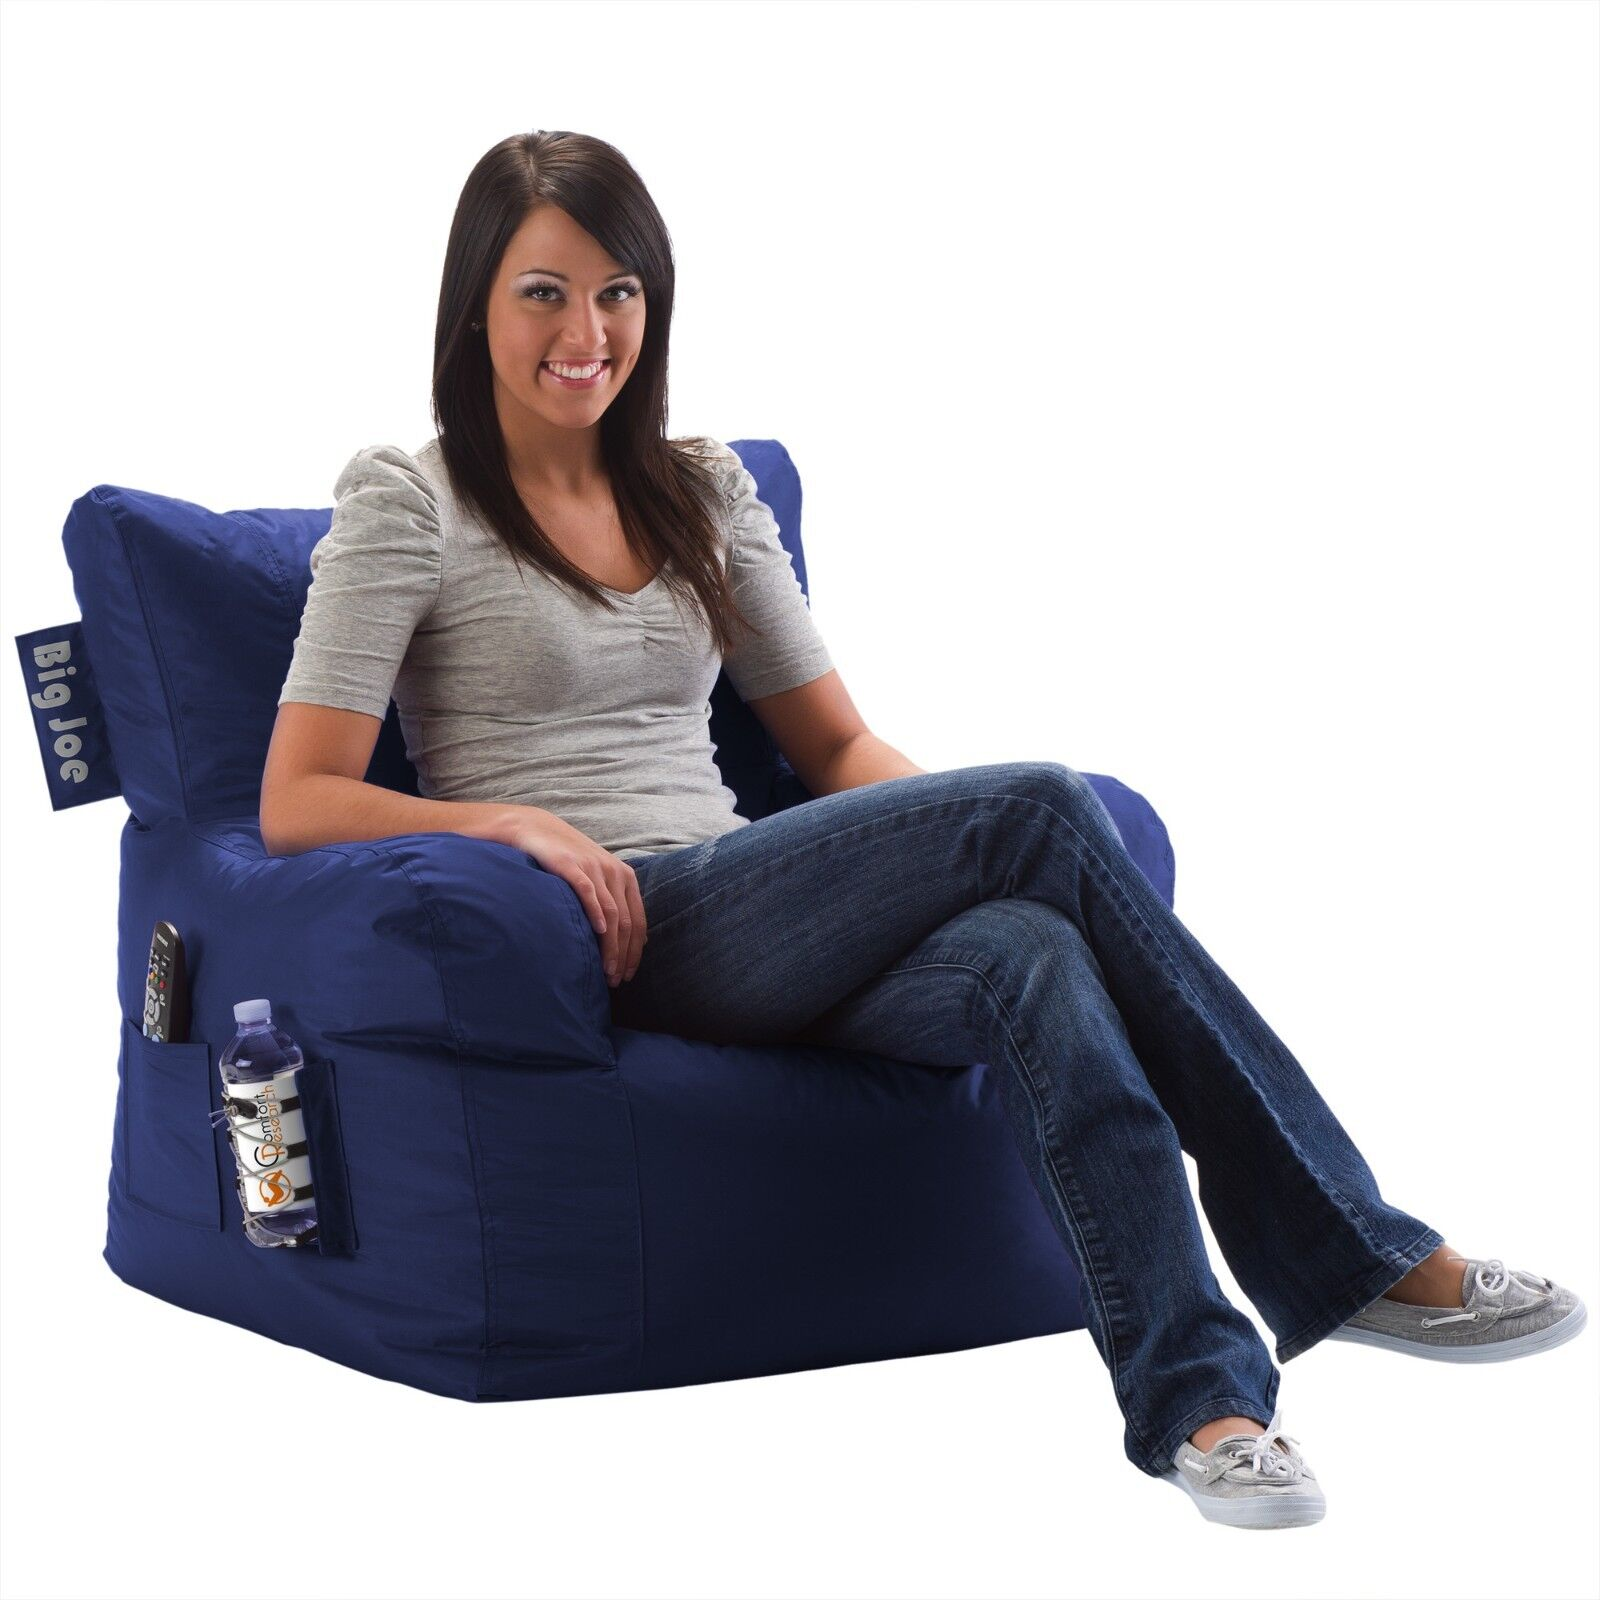 Phenomenal Details About Pocket Remote Control Drink Holder Home Relax Bean Bag Big Joe Chair Multi Use Beatyapartments Chair Design Images Beatyapartmentscom